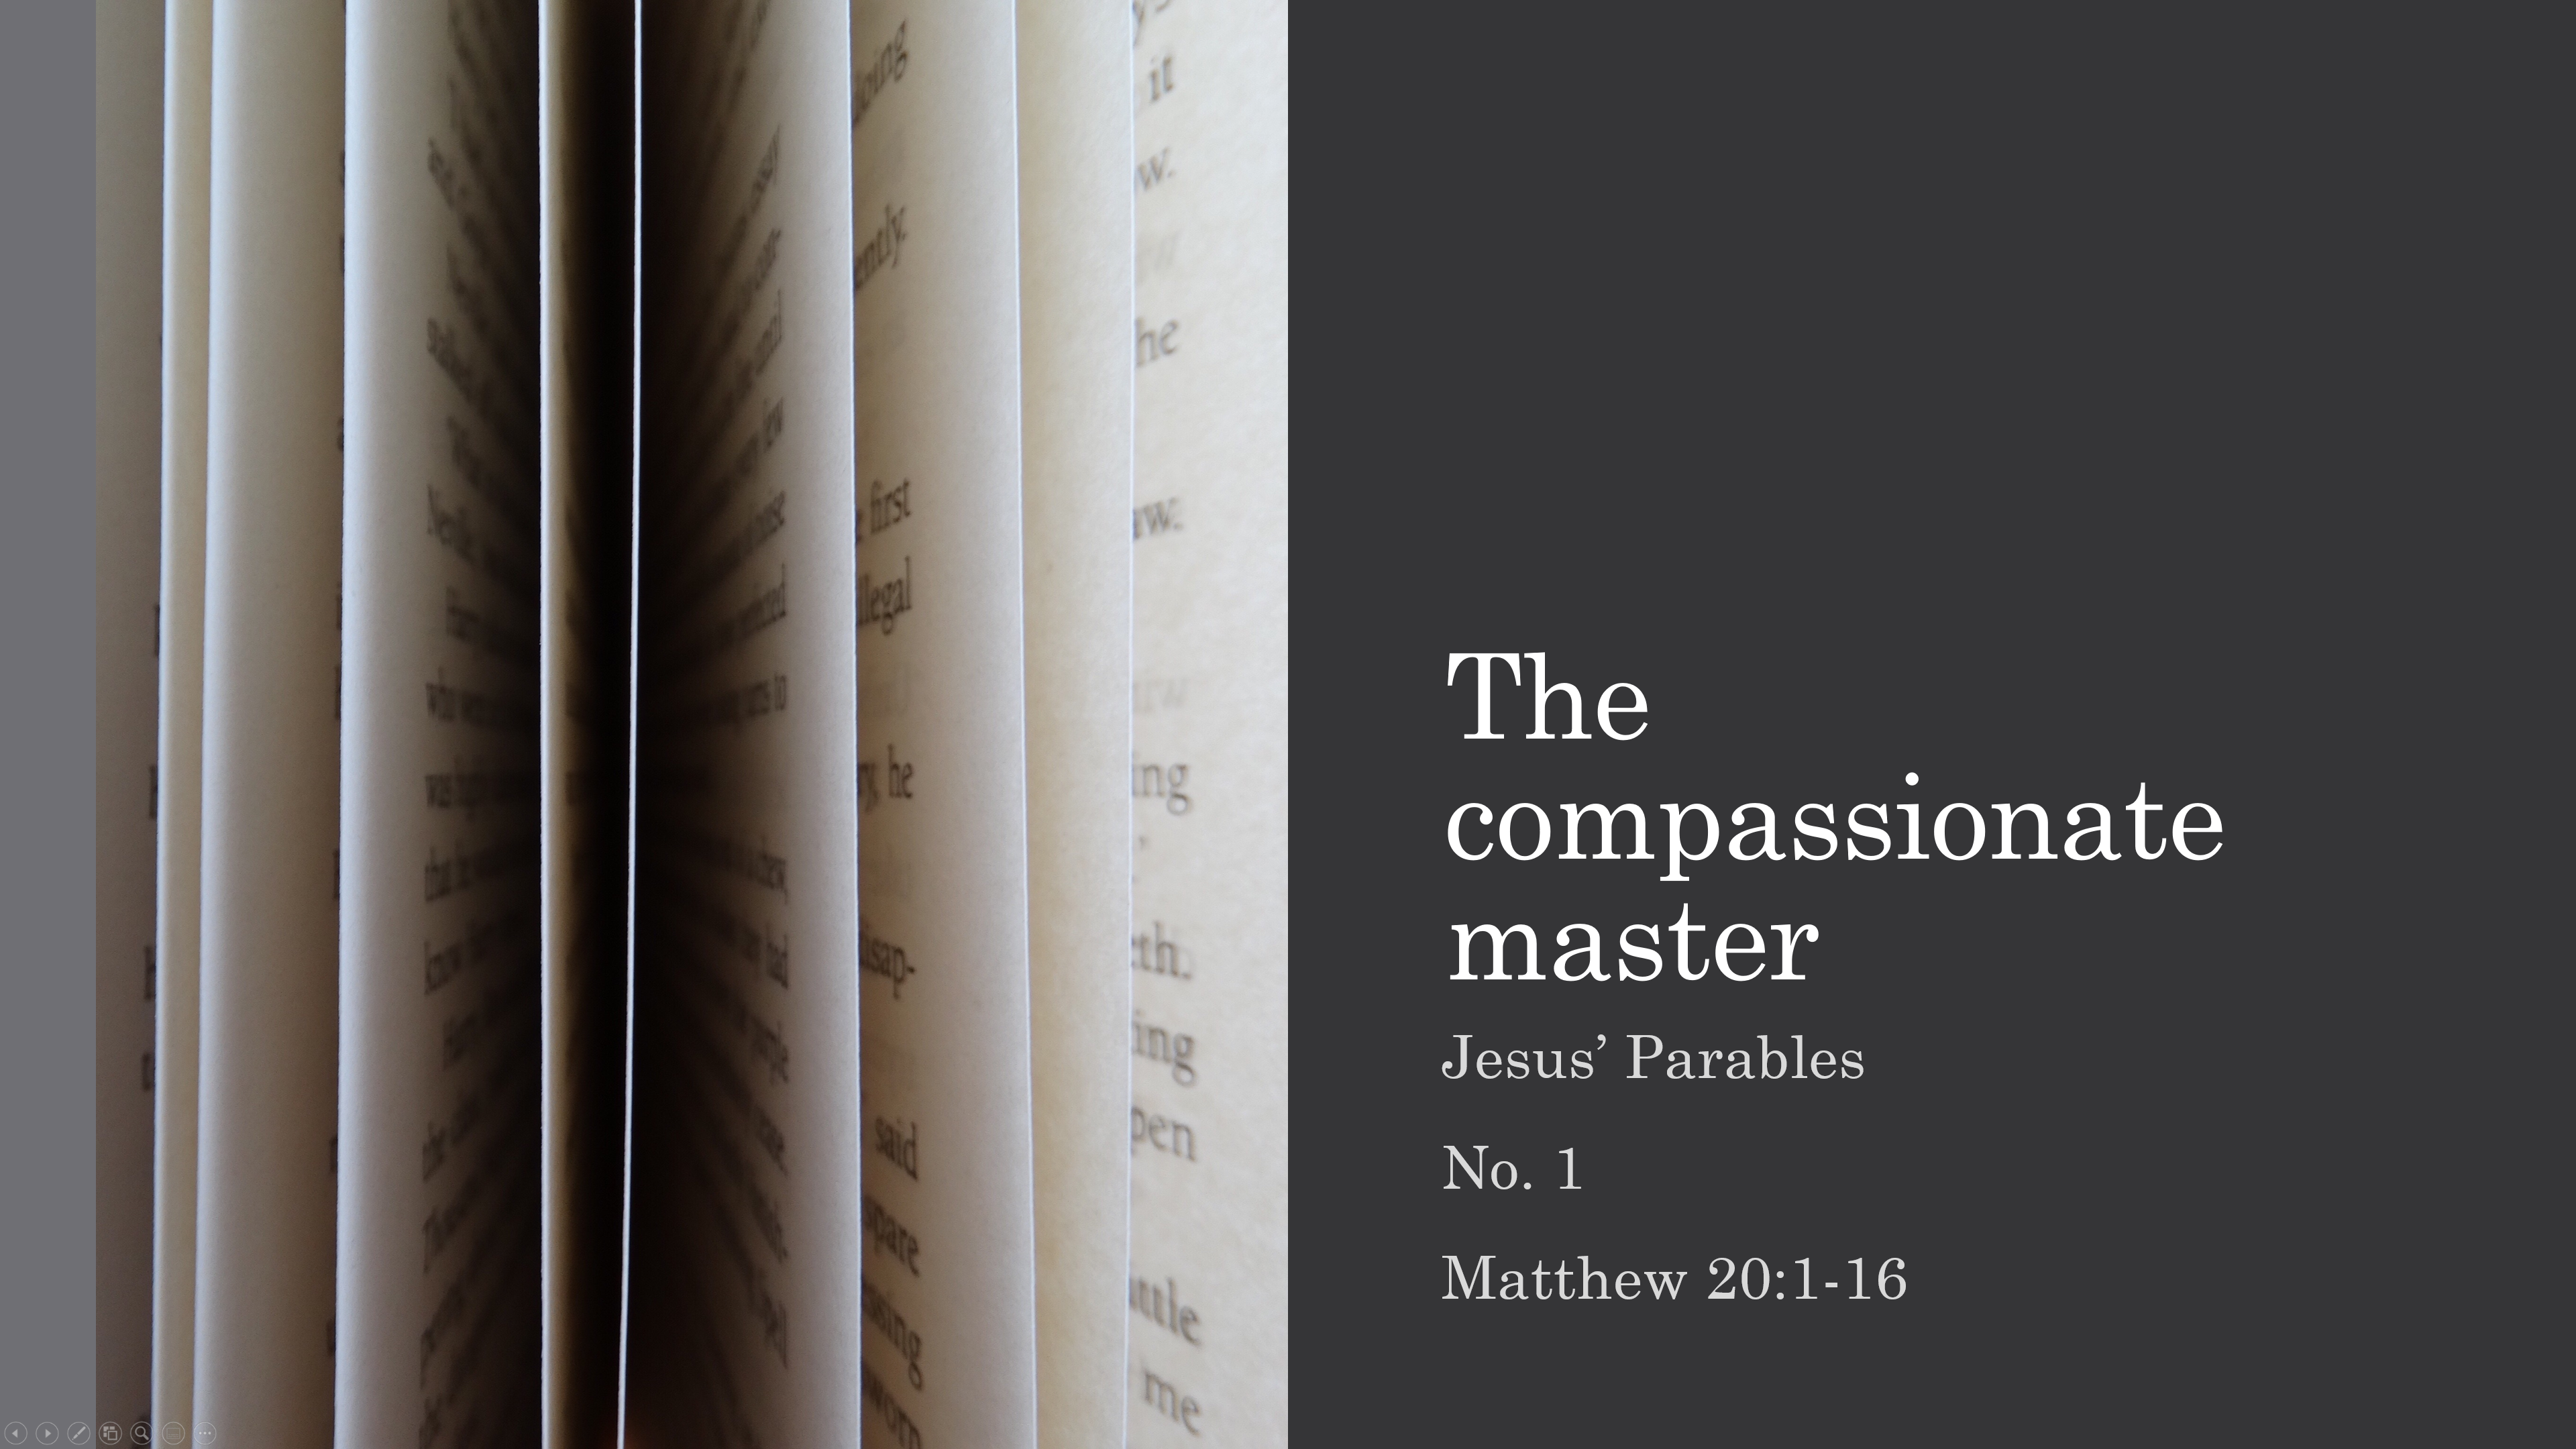 The compassionate master -- Jesus' Parables - No. 1